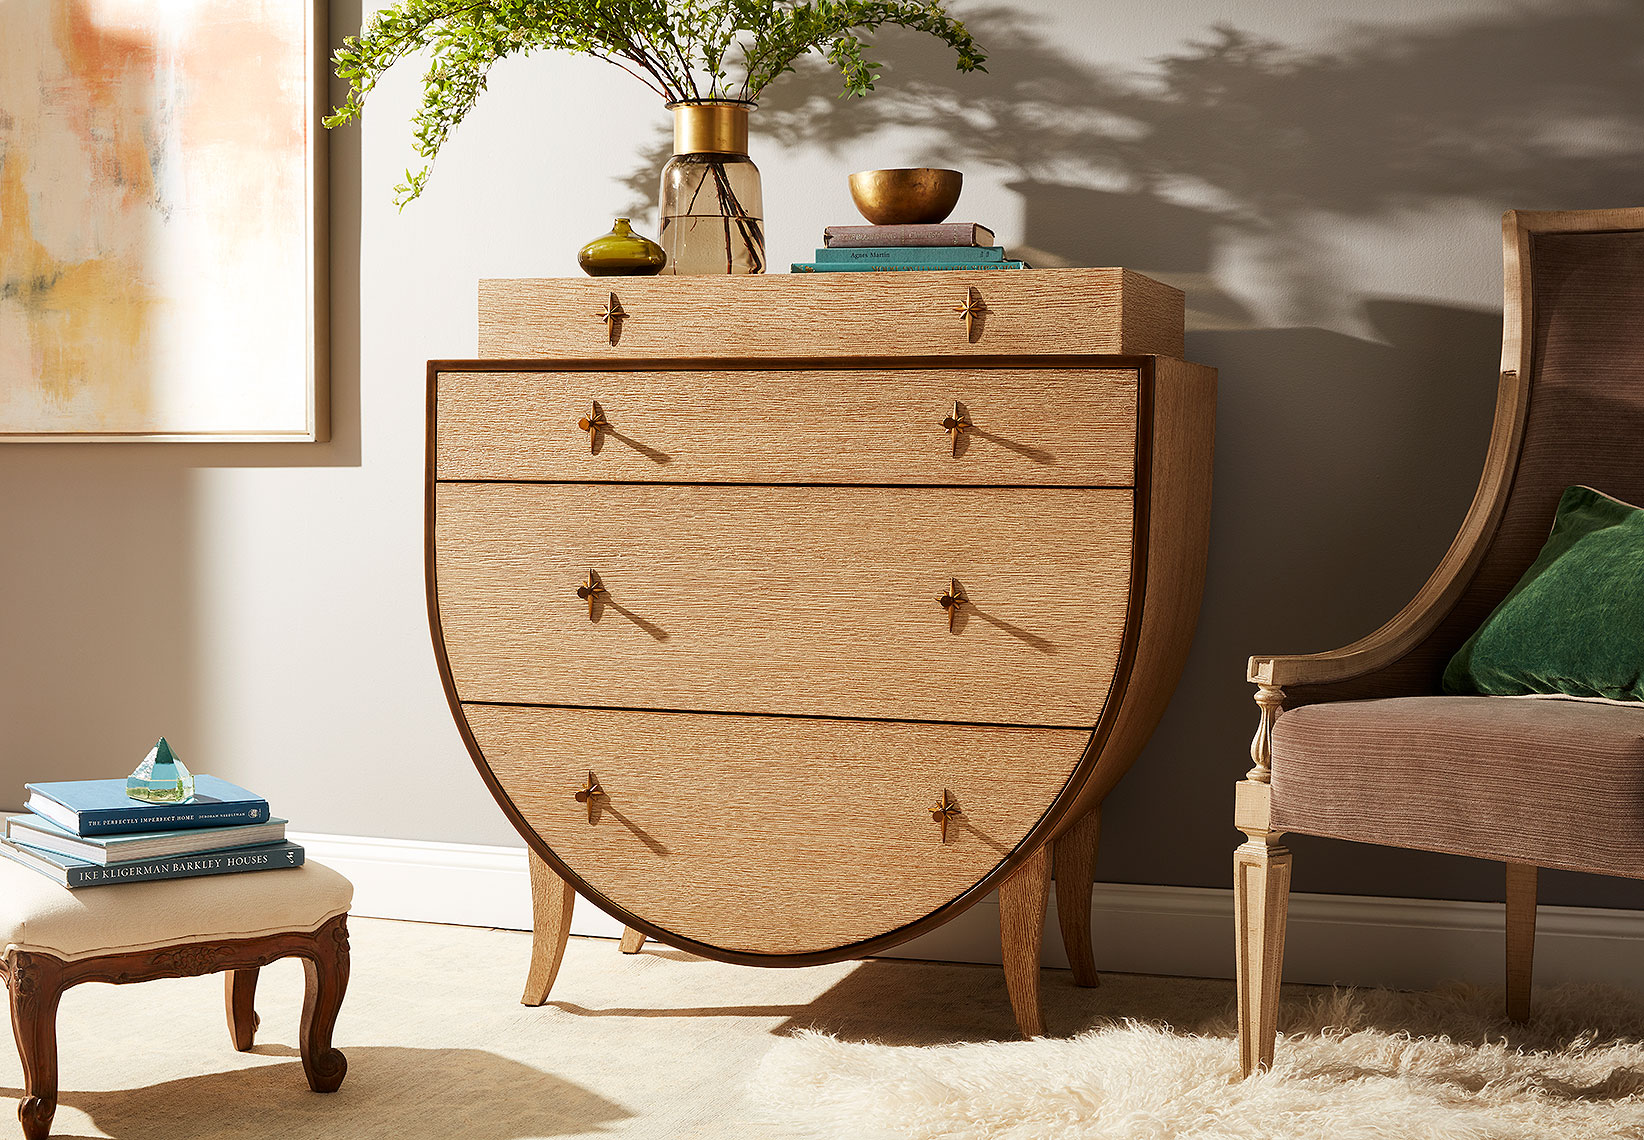 OKL_SIT_00078128_LIFE_CR_Statement-Dressers3815_YHK1